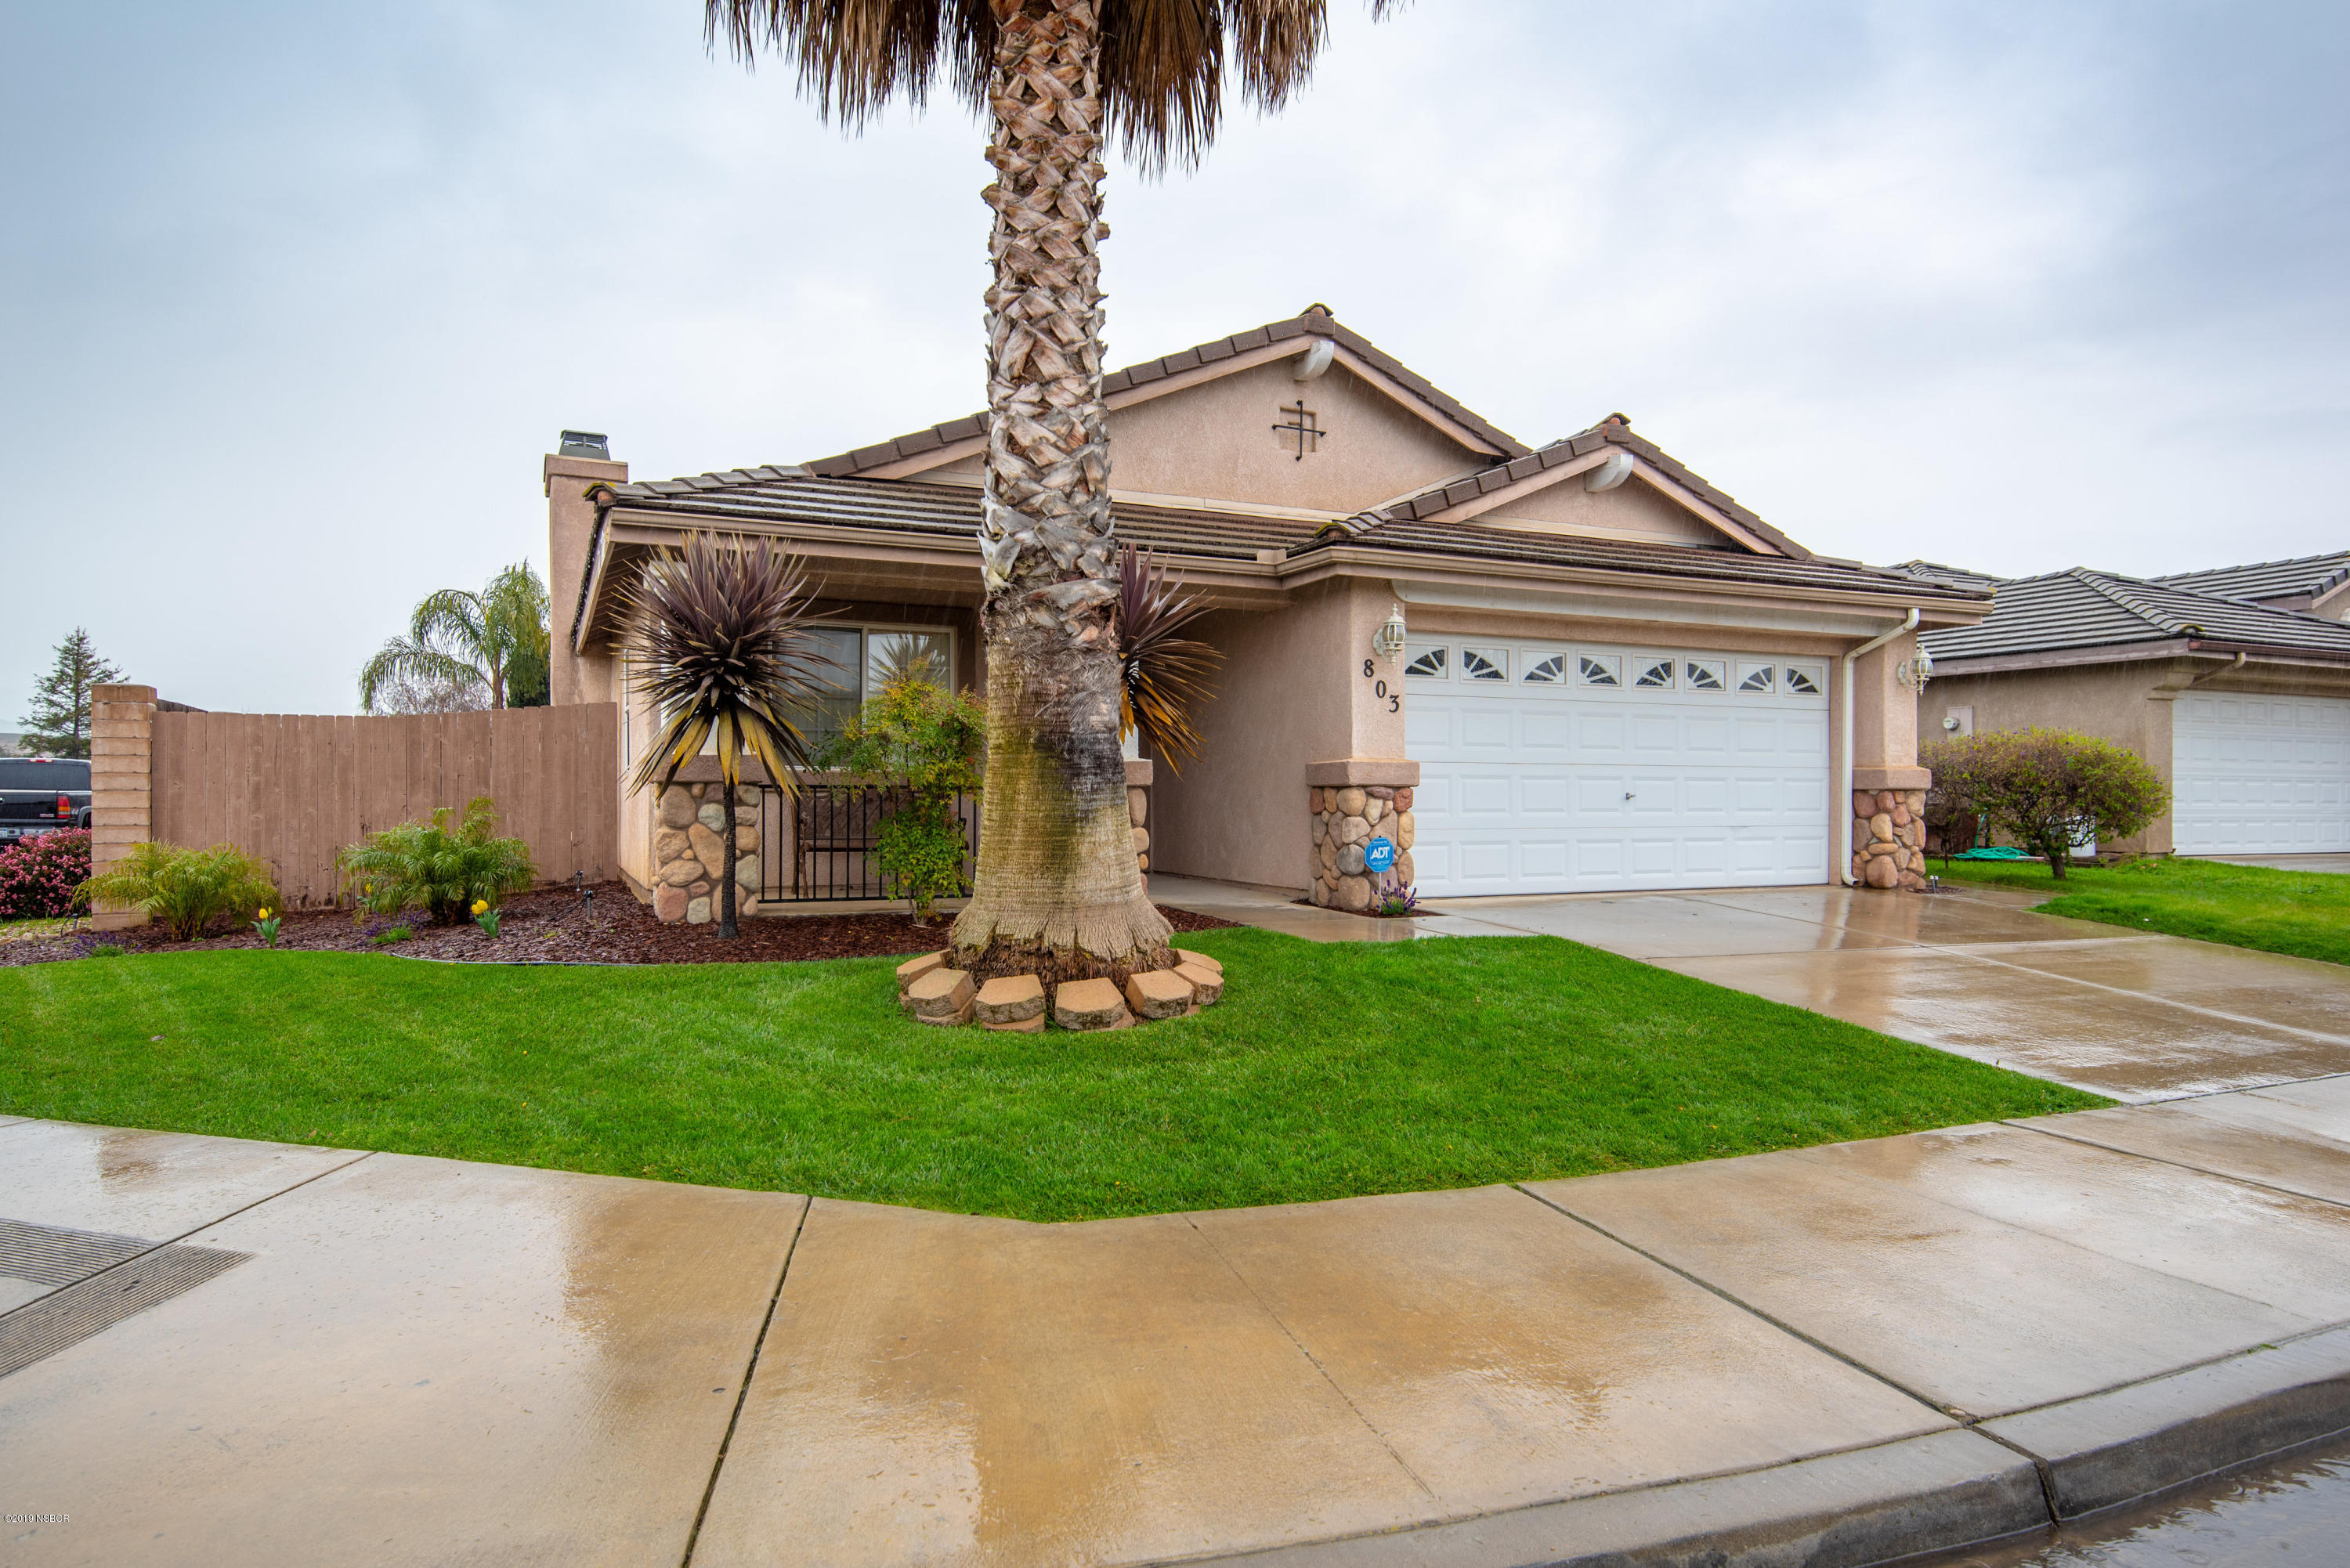 Santa Maria Homes for Sale -  Price Reduced,  803  Paden Street